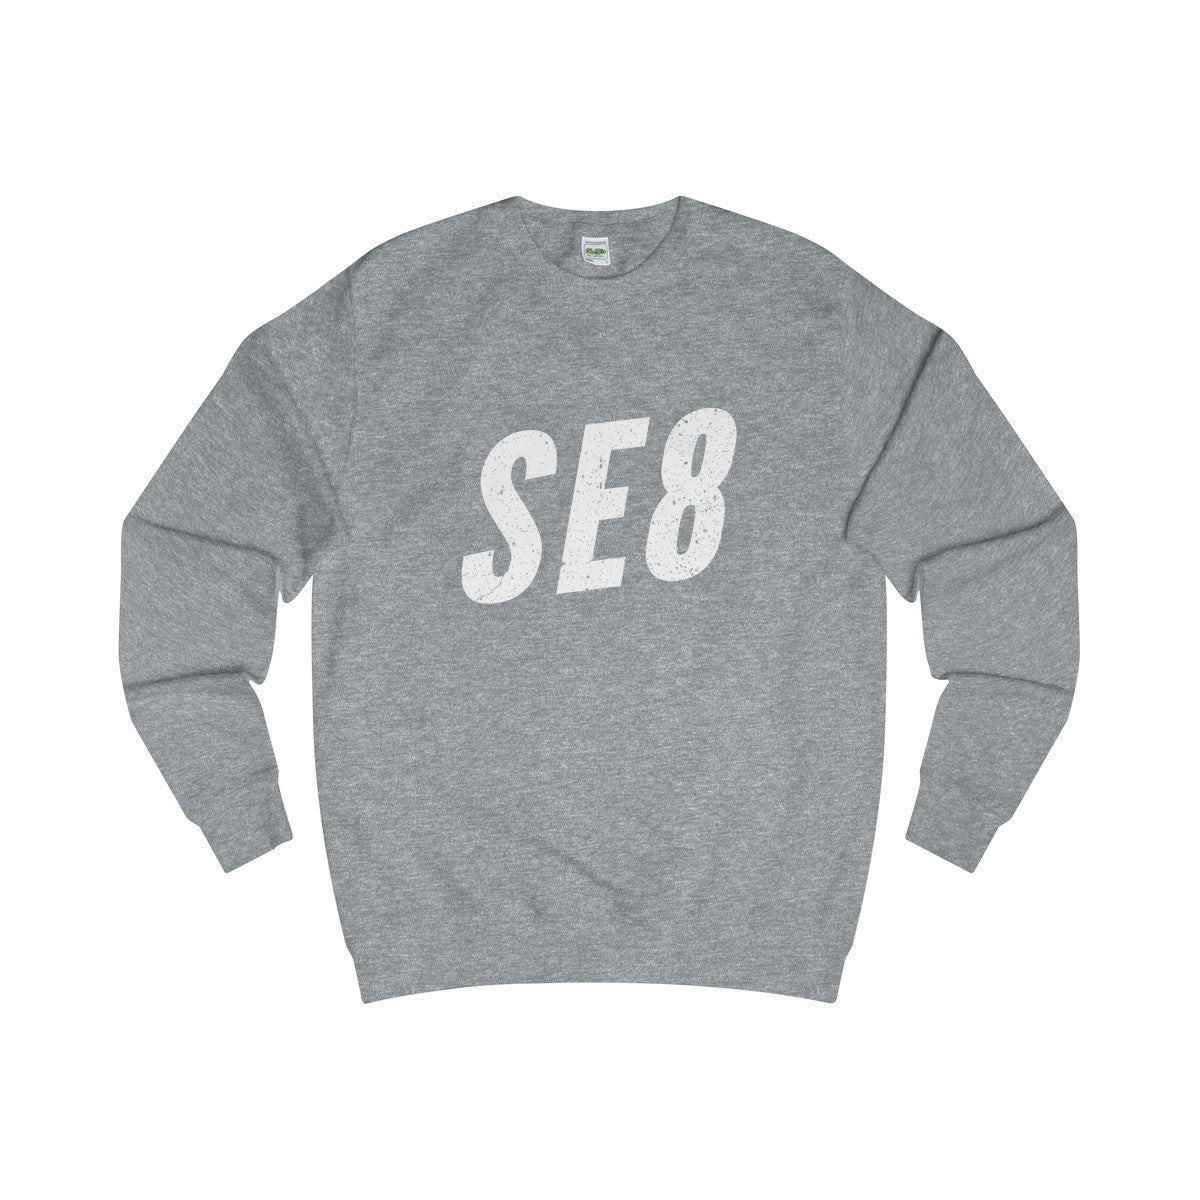 Dulwich SE8 Sweater